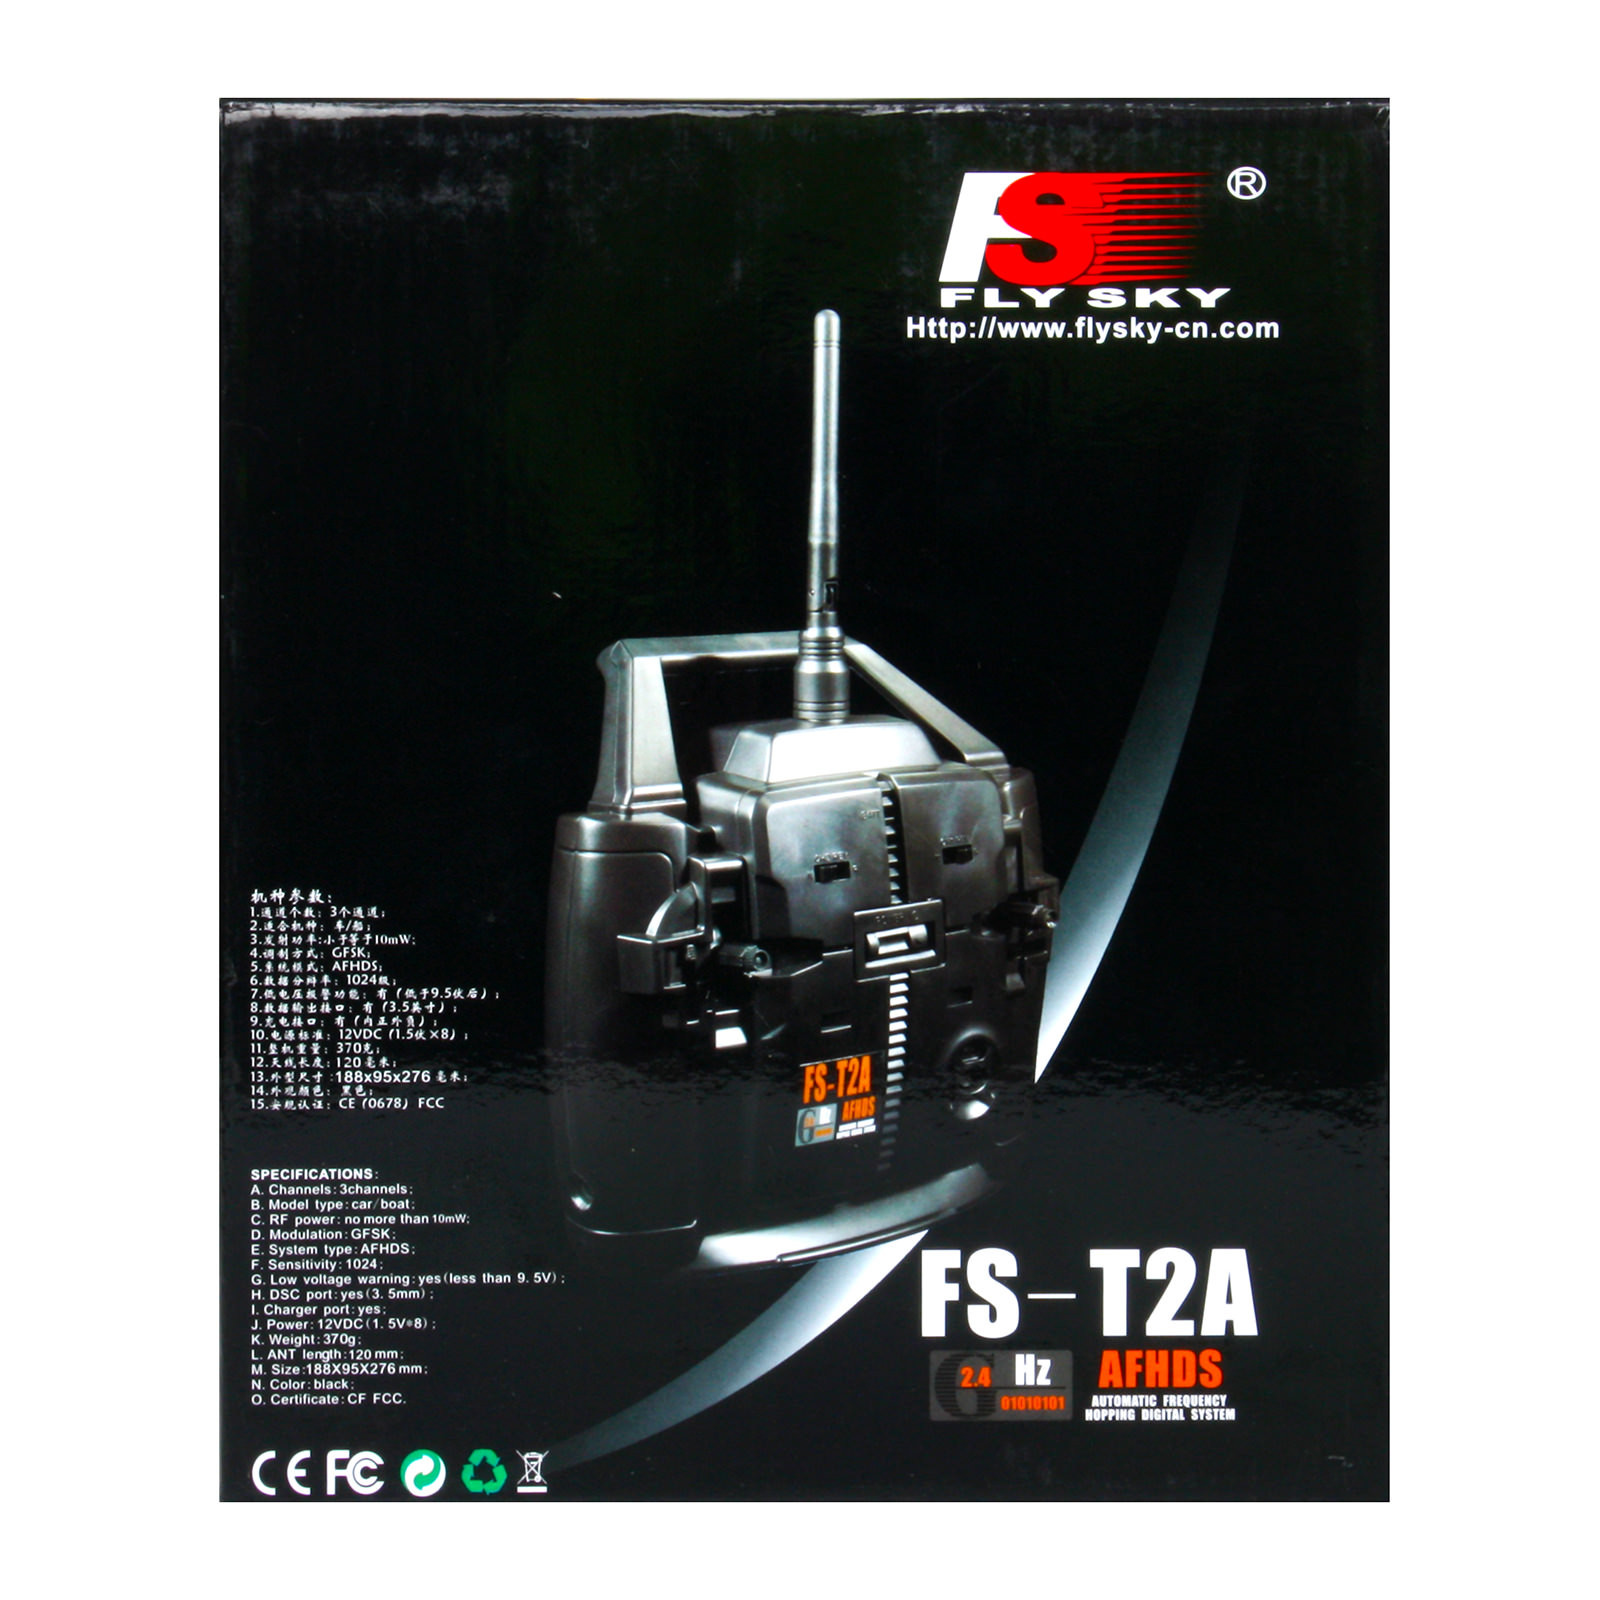 Flysky 2 Channel 2.4g Radio System